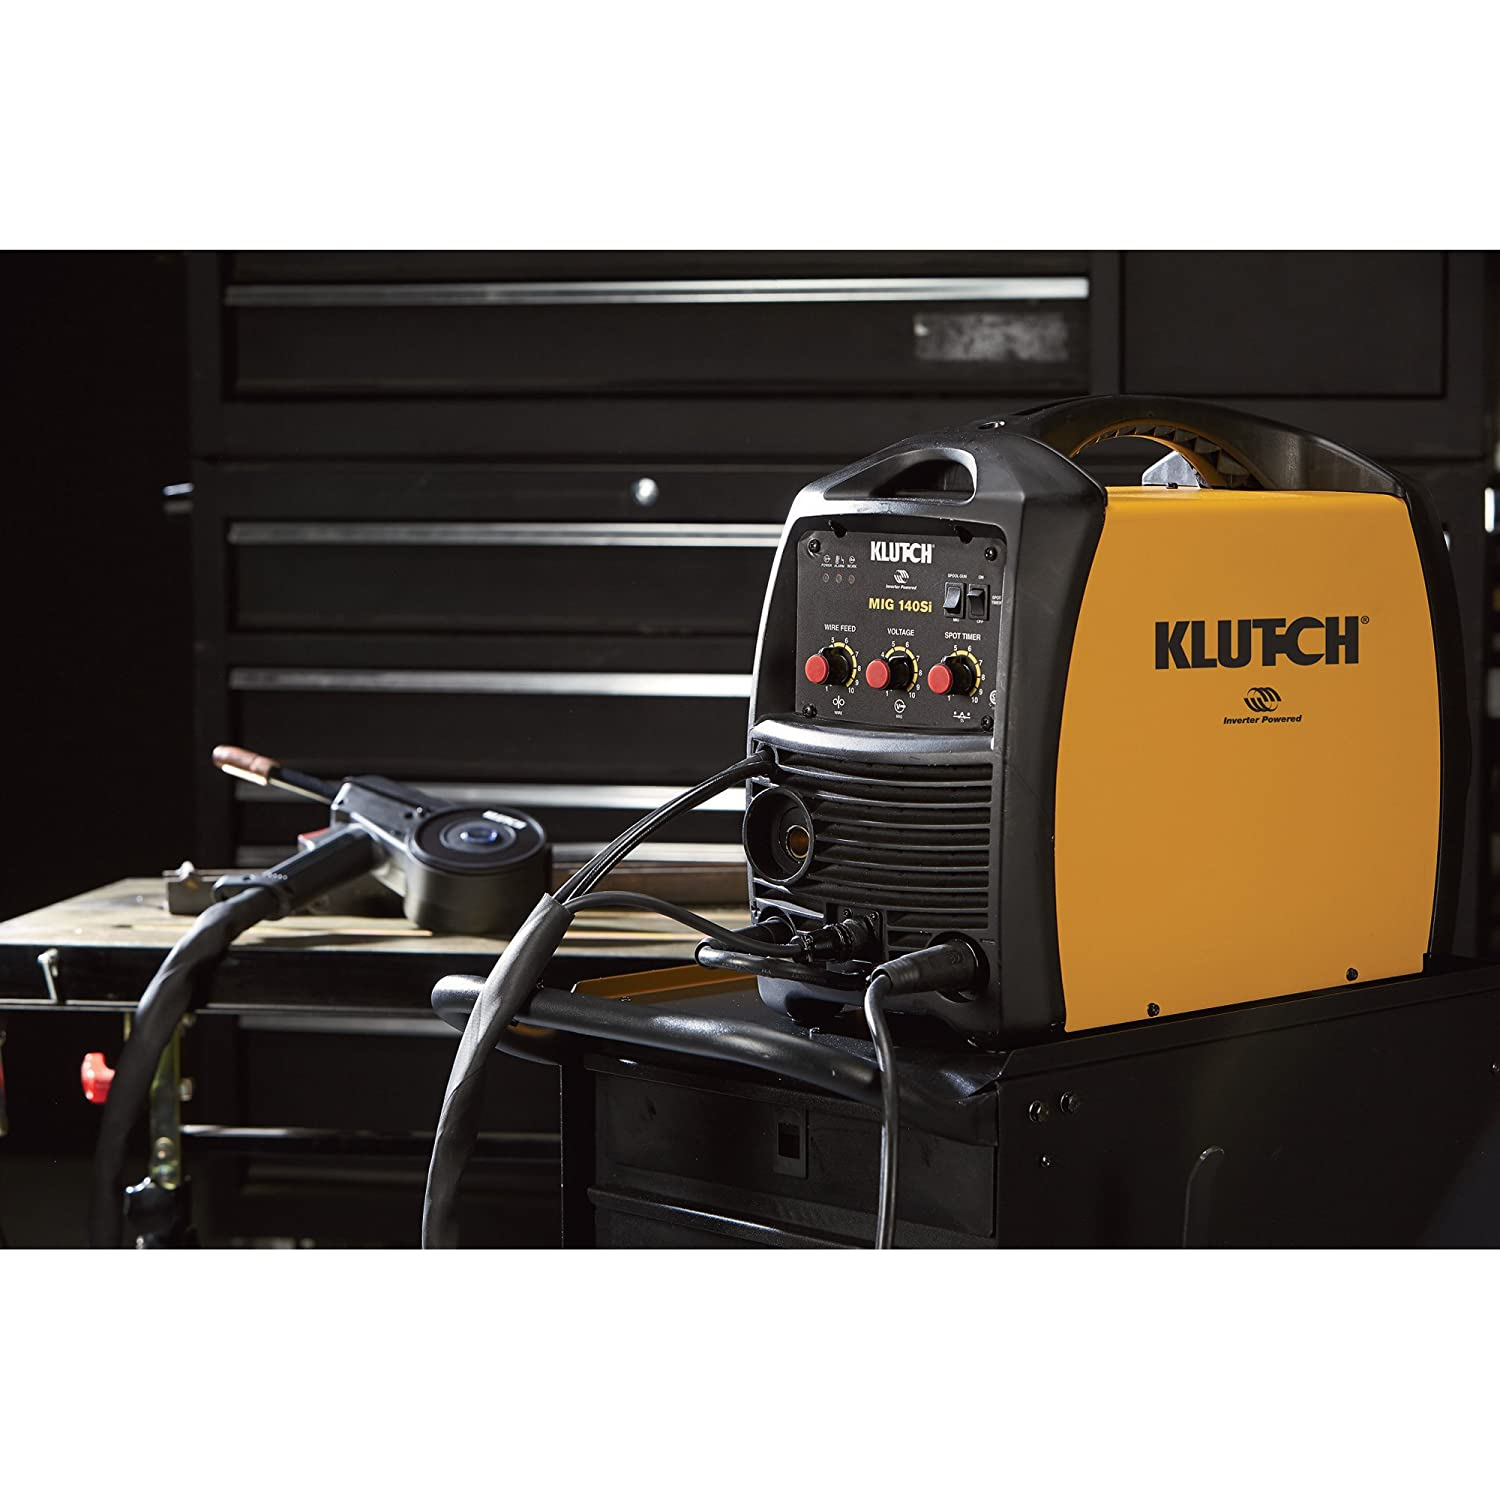 Klutch MIG 140SI Inverter-Powered Wire-Feed MIG Welder - 140 Amp ...